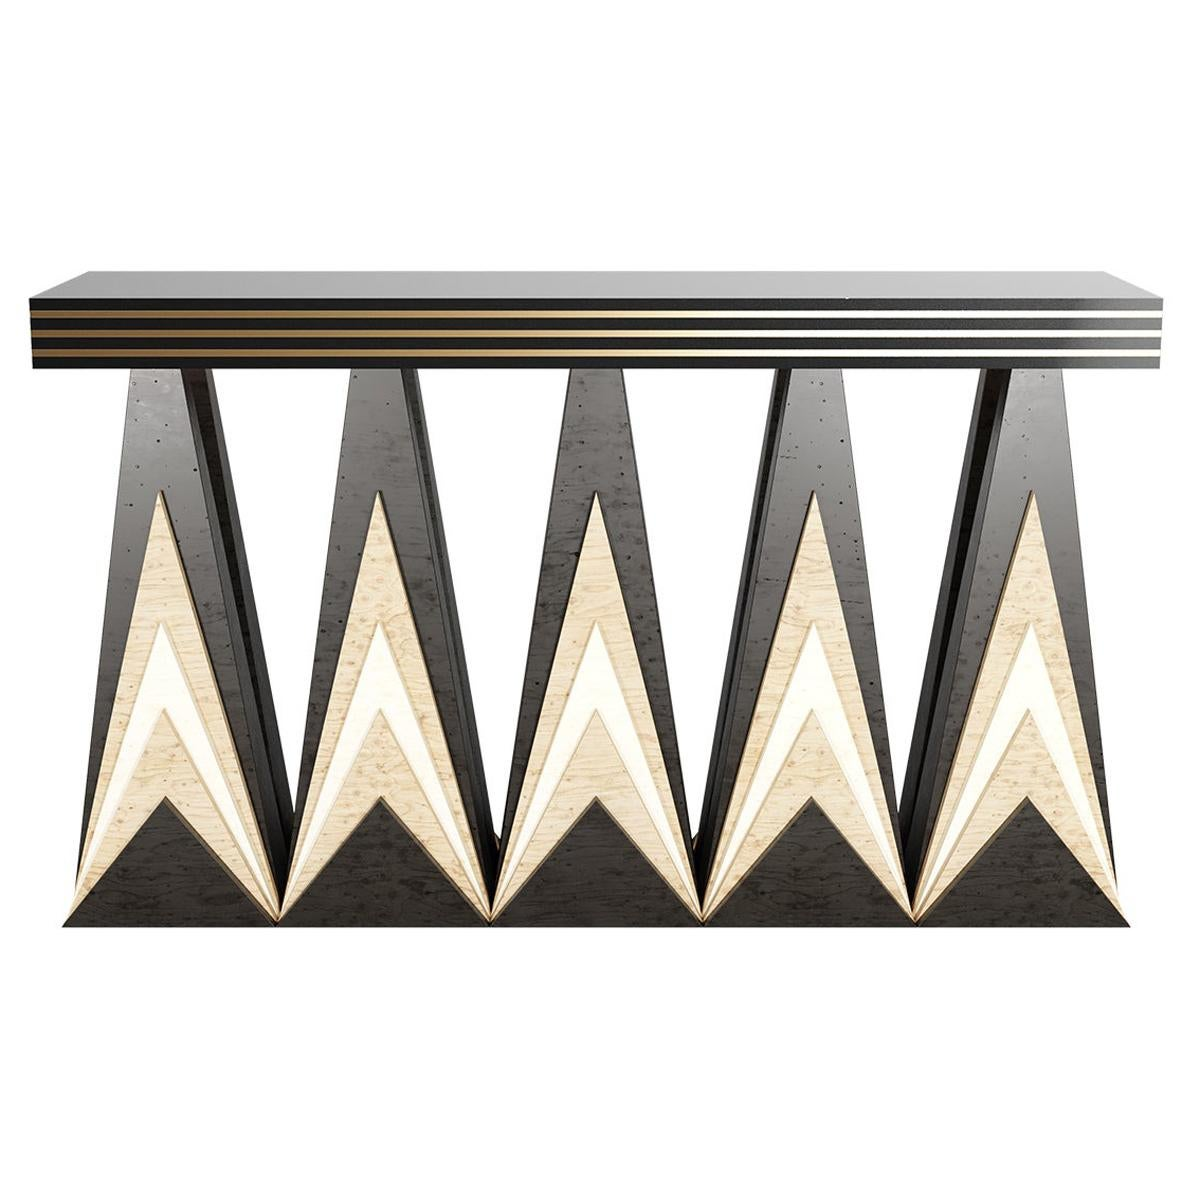 Art Deco Inspired Console Table in Wood & Gold Stainless Steel Details